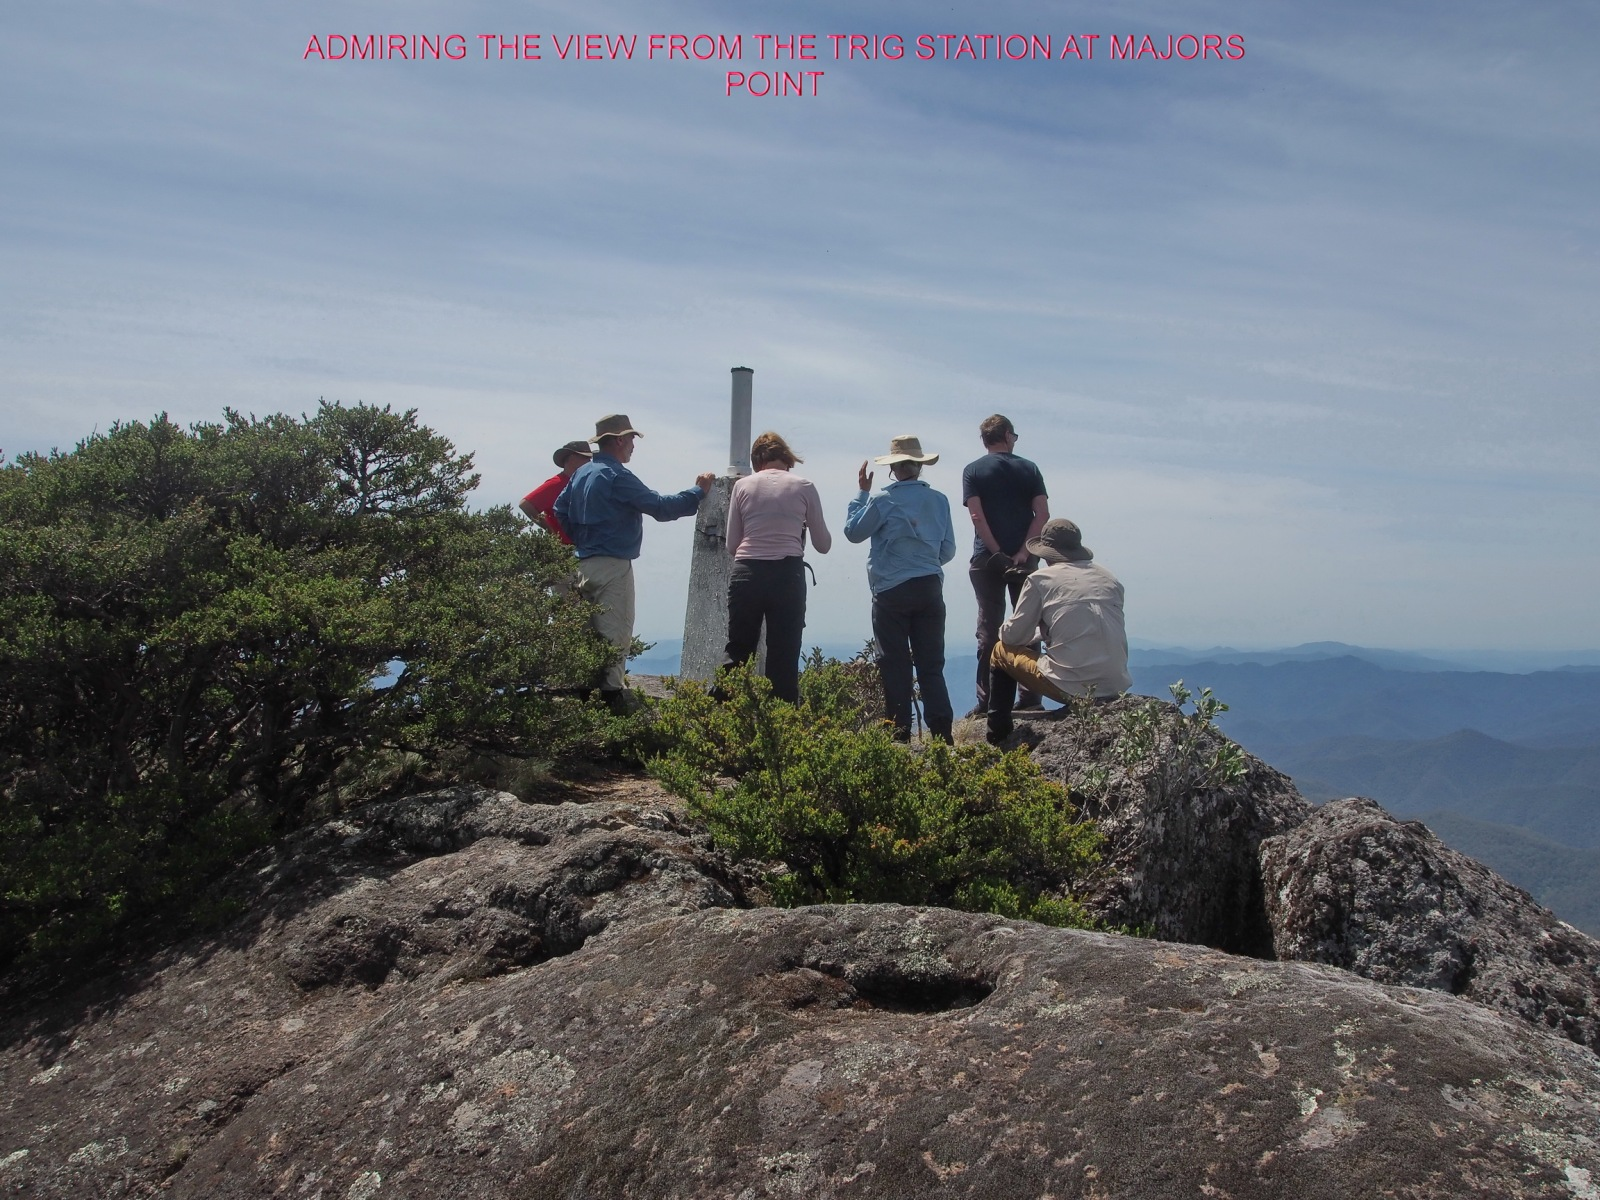 ADMIRING THE VIEW FROM THE TRIG STATION AT MAJORS POINT